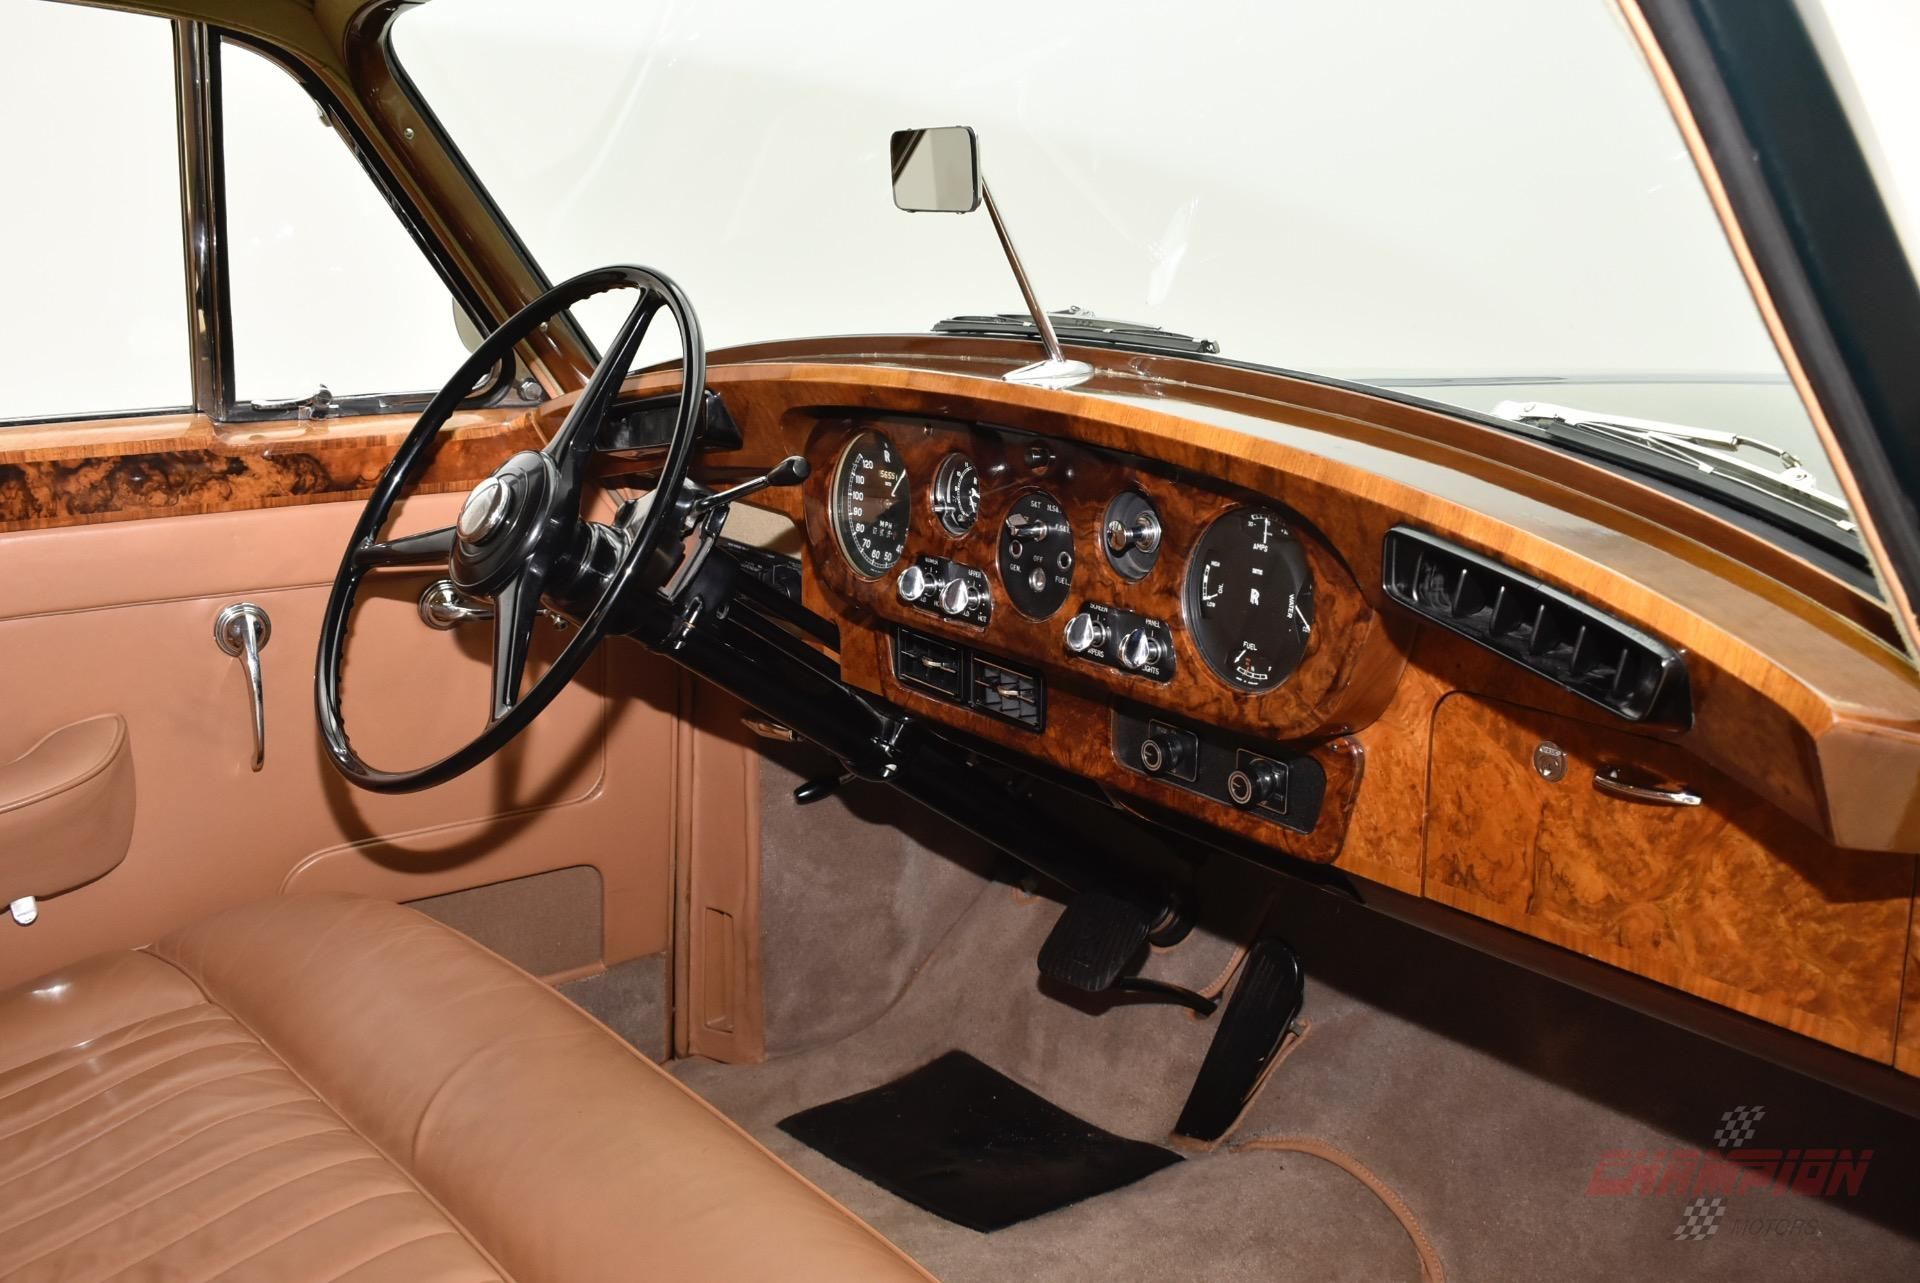 New York - 1960 Rolls Royce Silvercloud's Interior